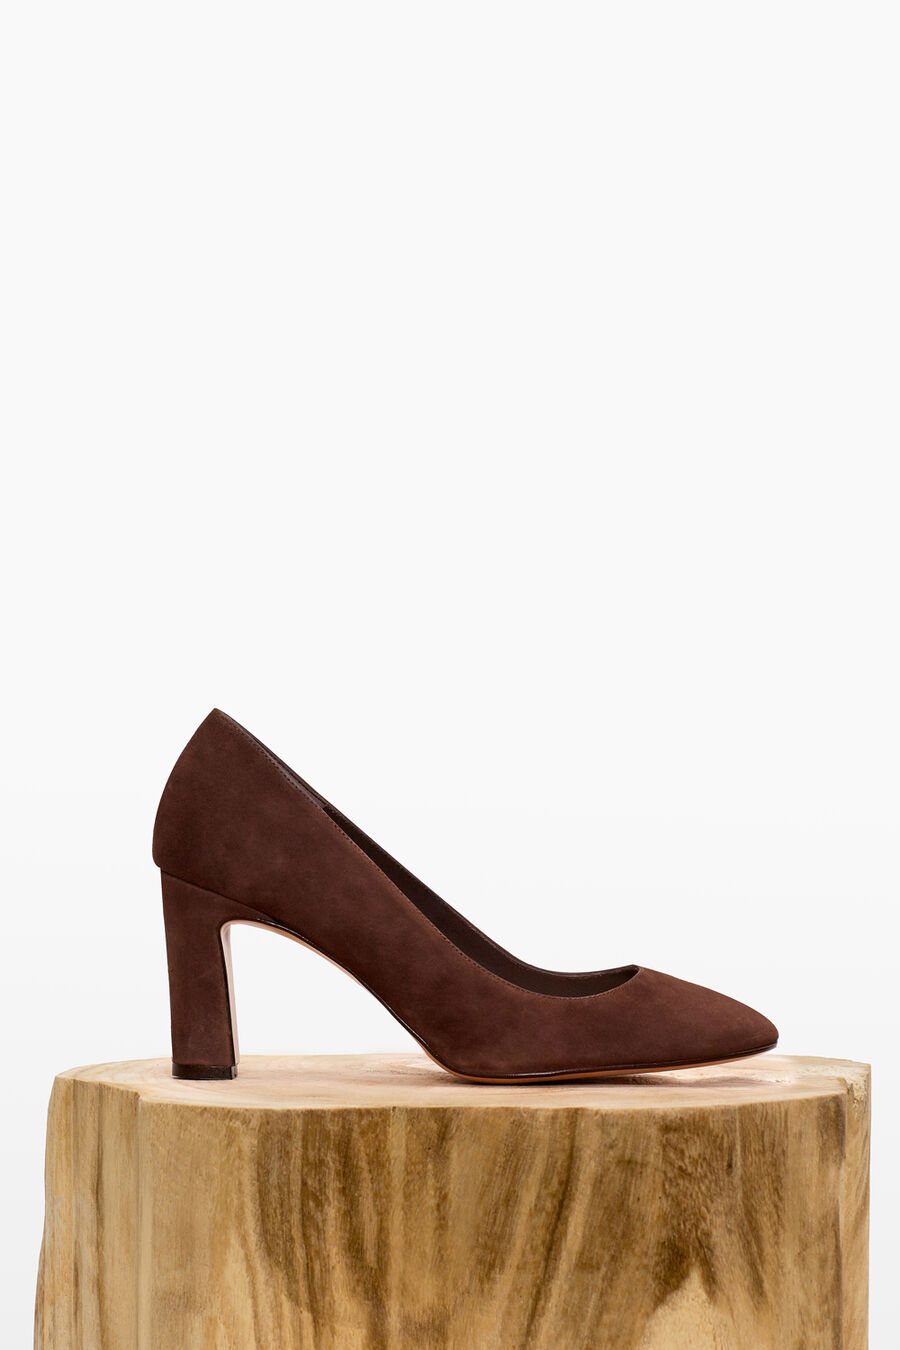 Suede shoes with heels